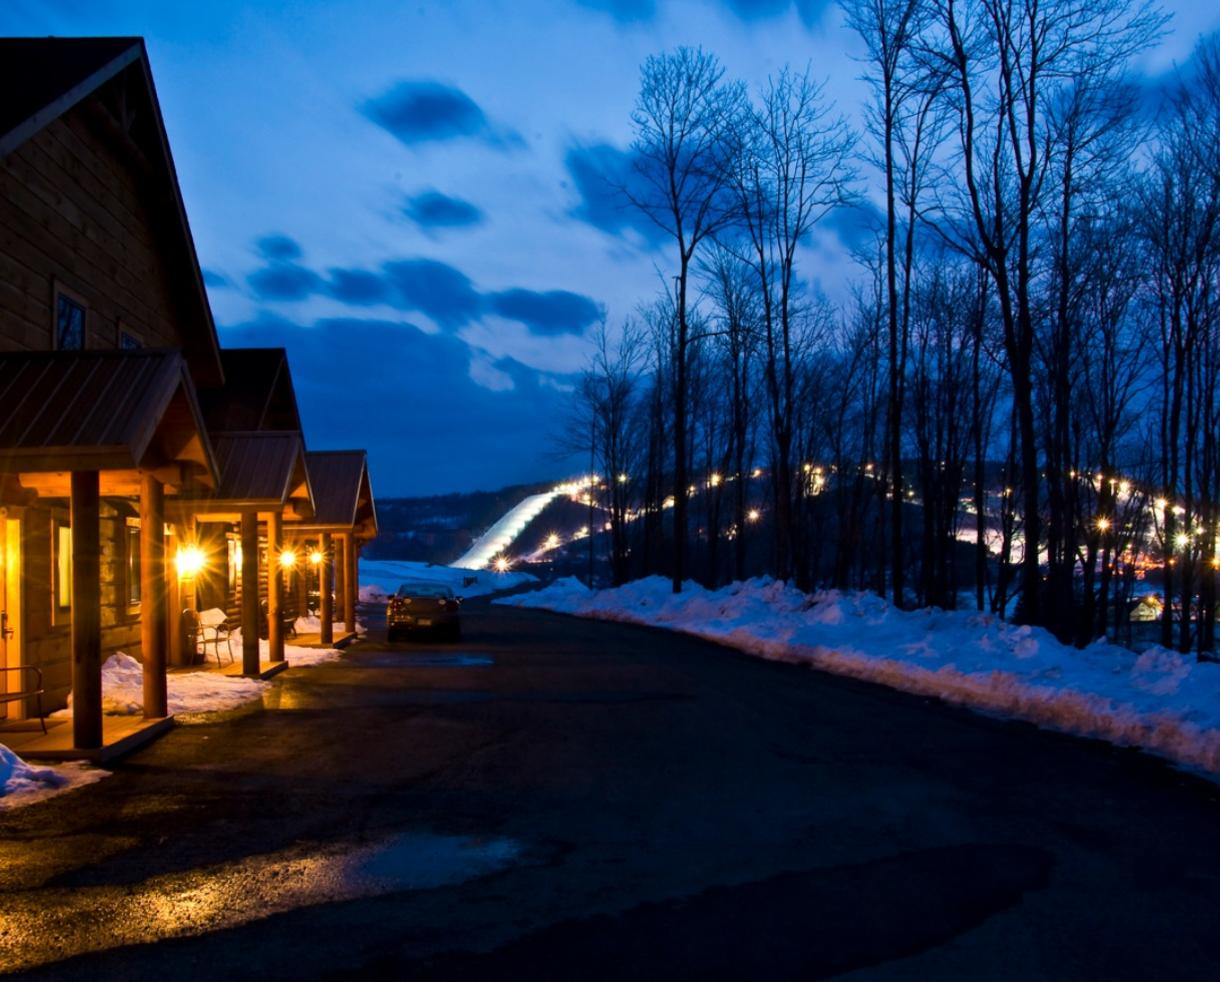 $149+ for Luxury Cabin Stay at The Lodges at Sunset Village + Wisp Resort Lift Tickets - Deep Creek Lake (Up to 62% Off)